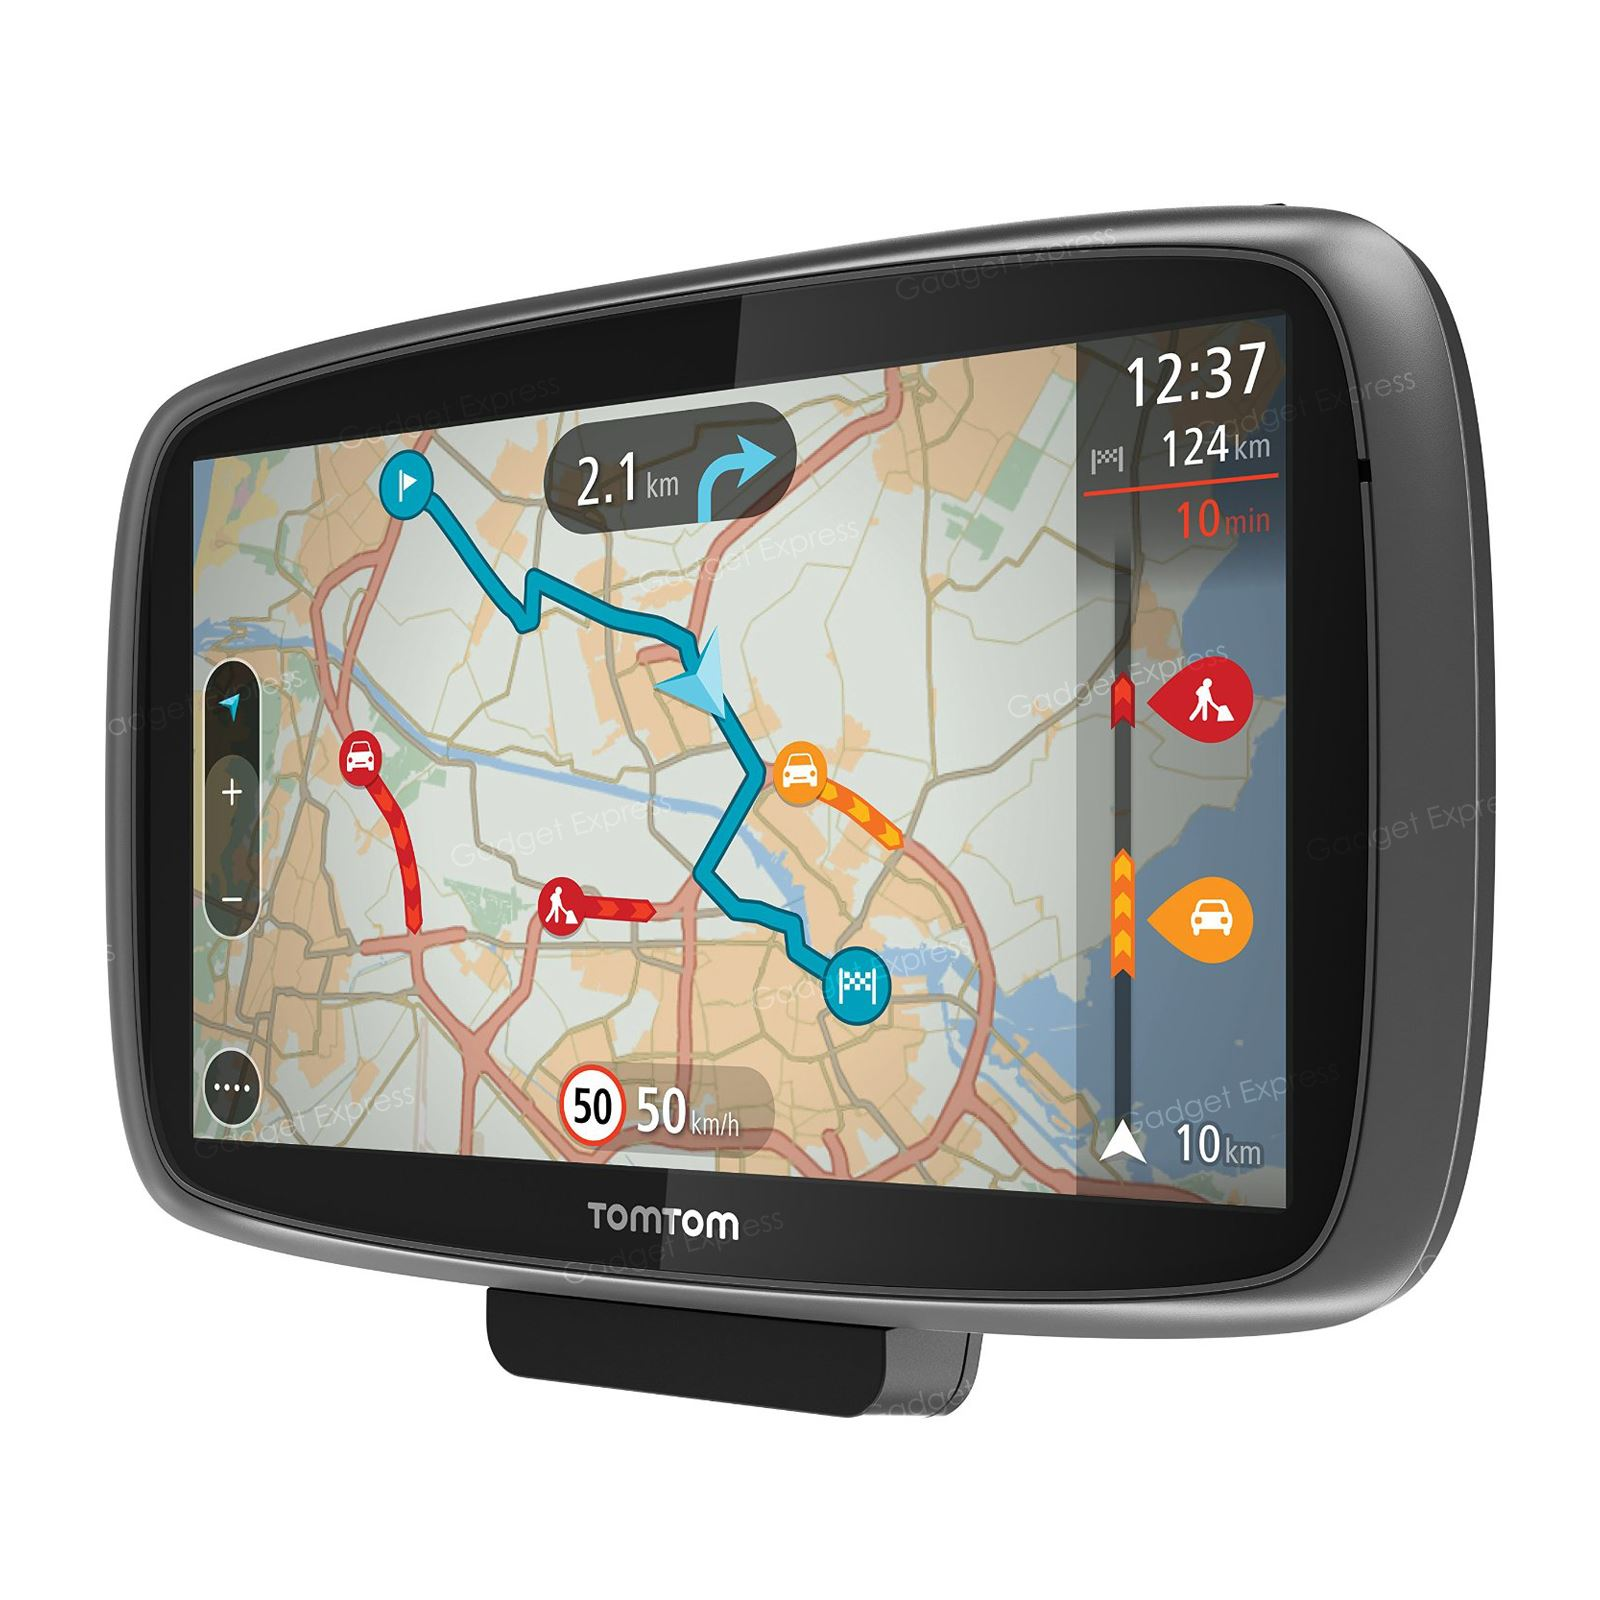 tomtom trucker 6000 gps truck sat nav free lifetime maps 1 year live traffic 636926076029 ebay. Black Bedroom Furniture Sets. Home Design Ideas